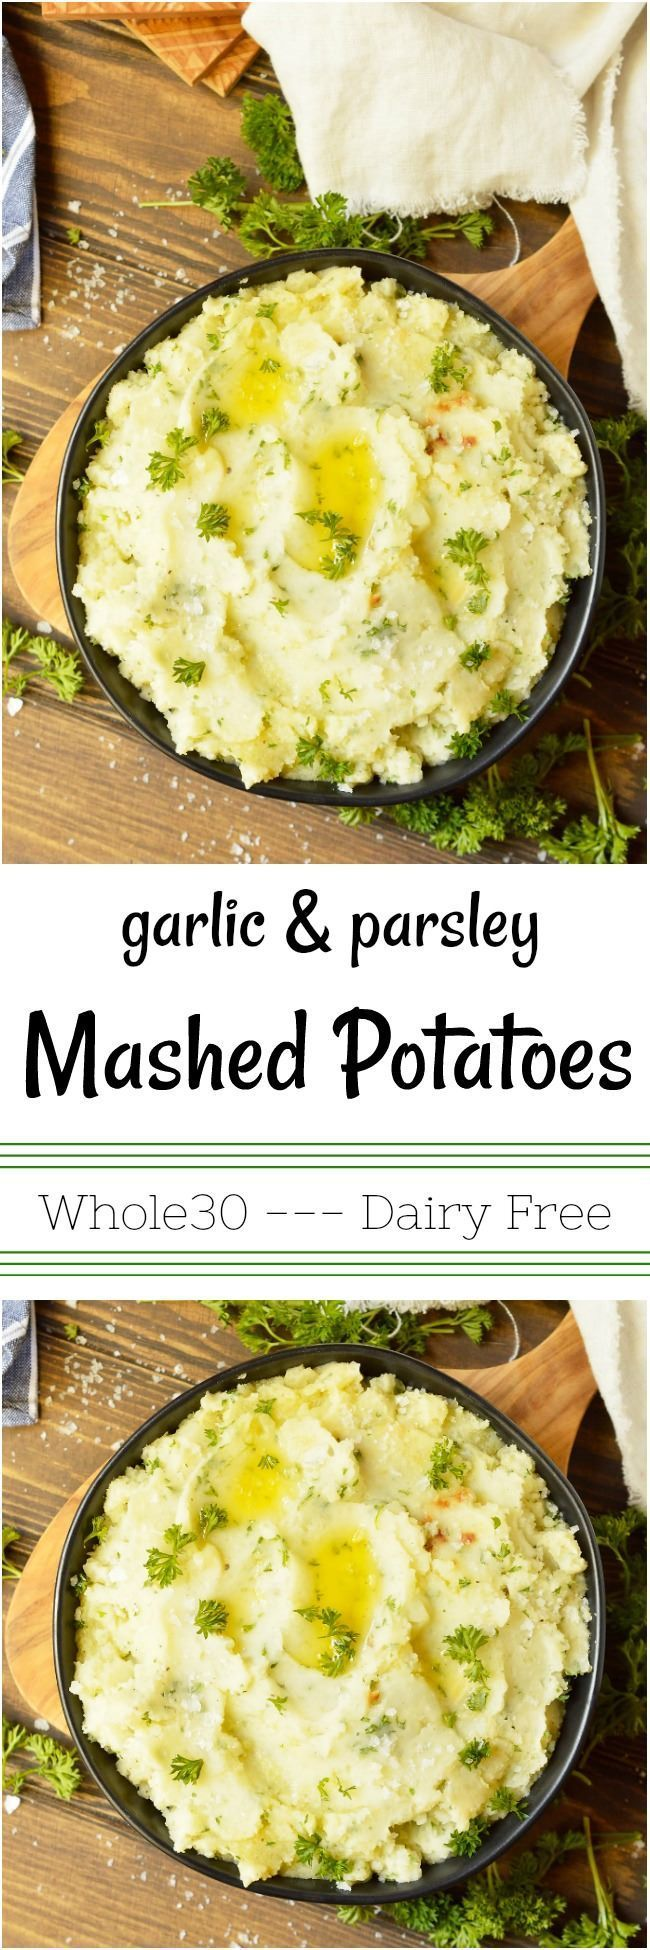 #dairyfreerecipes #mashedpotatoes #whole30recipe #thesedairy #vegetable